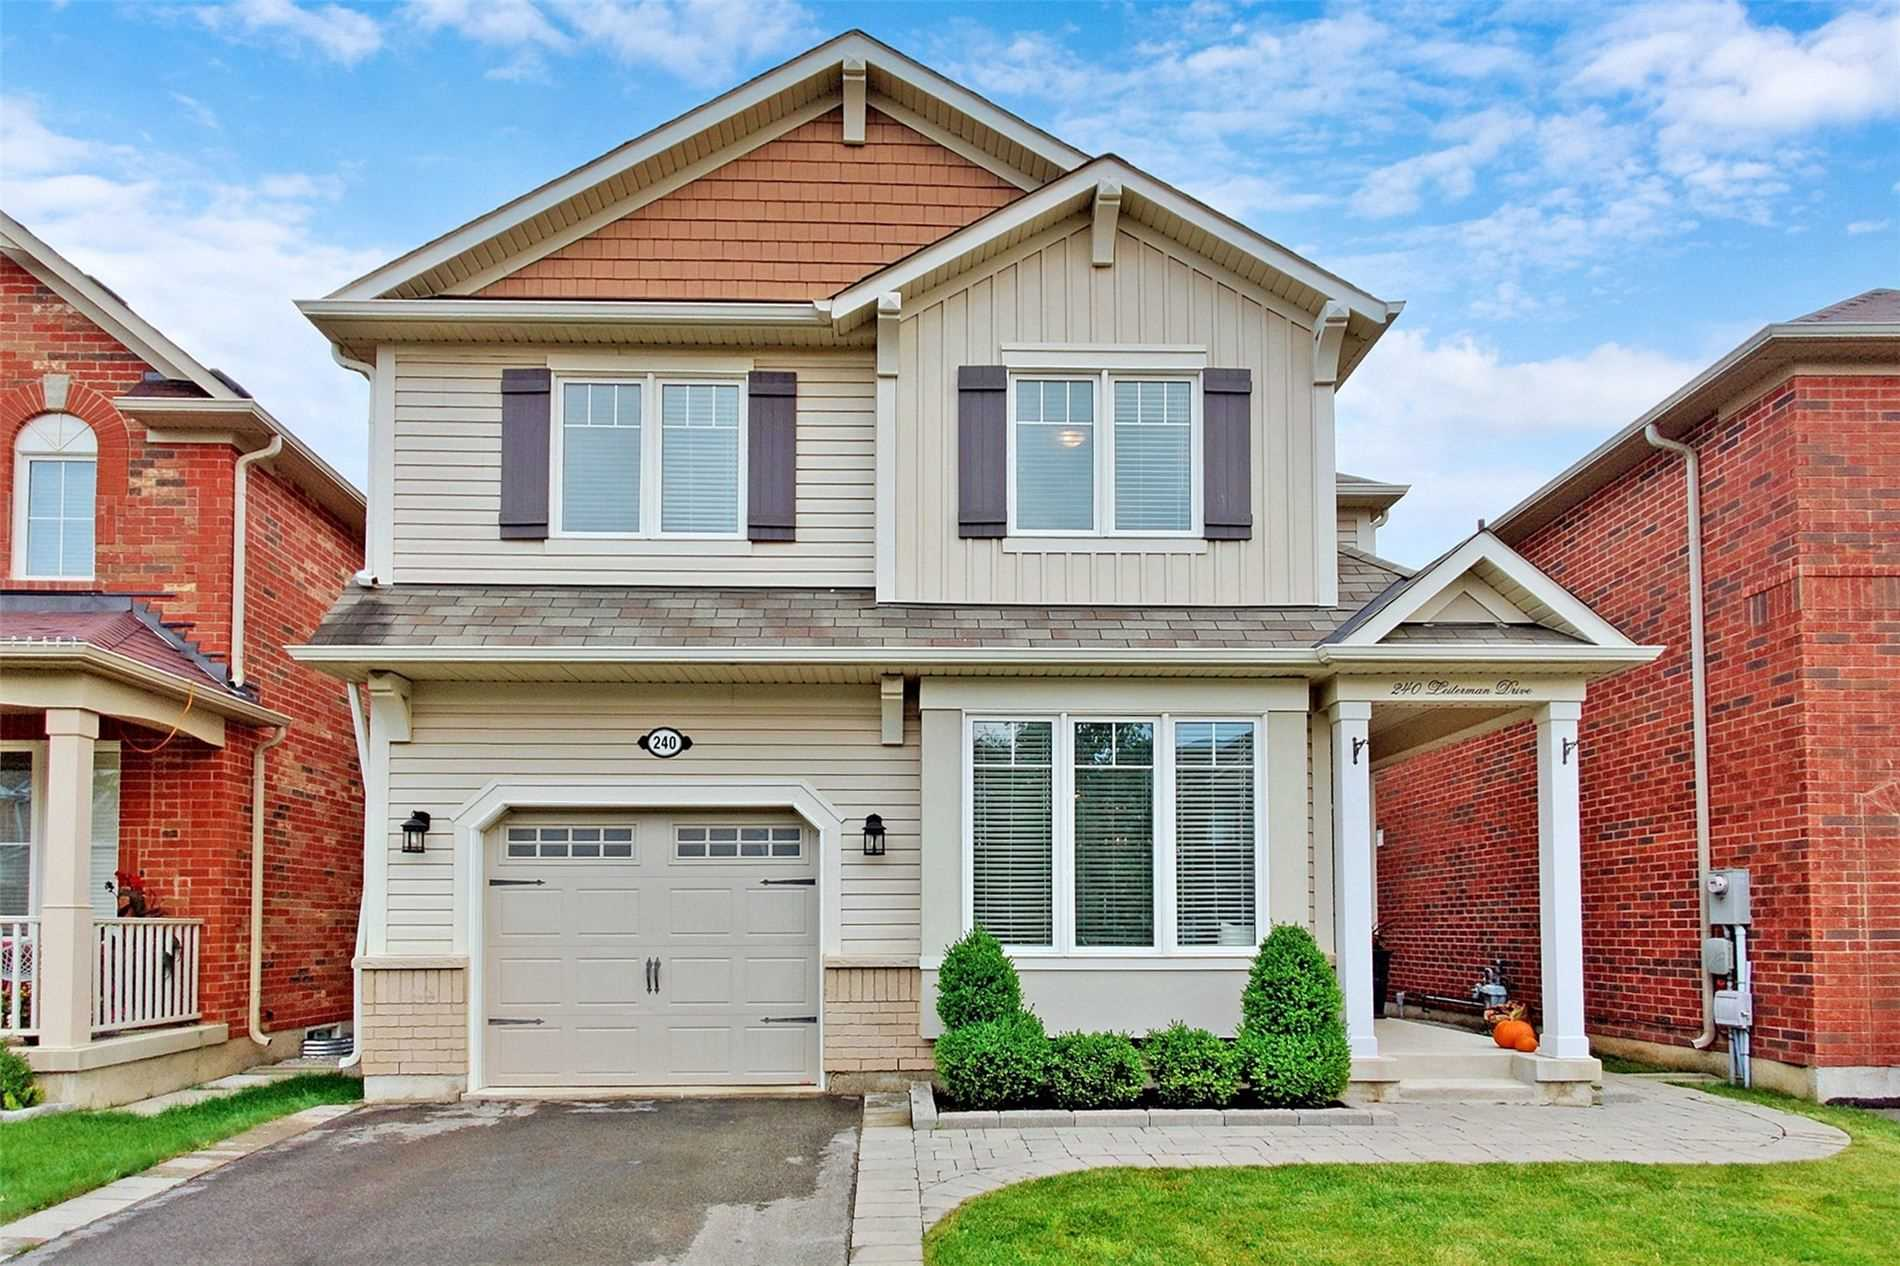 240 Leiterman Dr - Willmont Detached for sale, 3 Bedrooms (W5398871) - #2